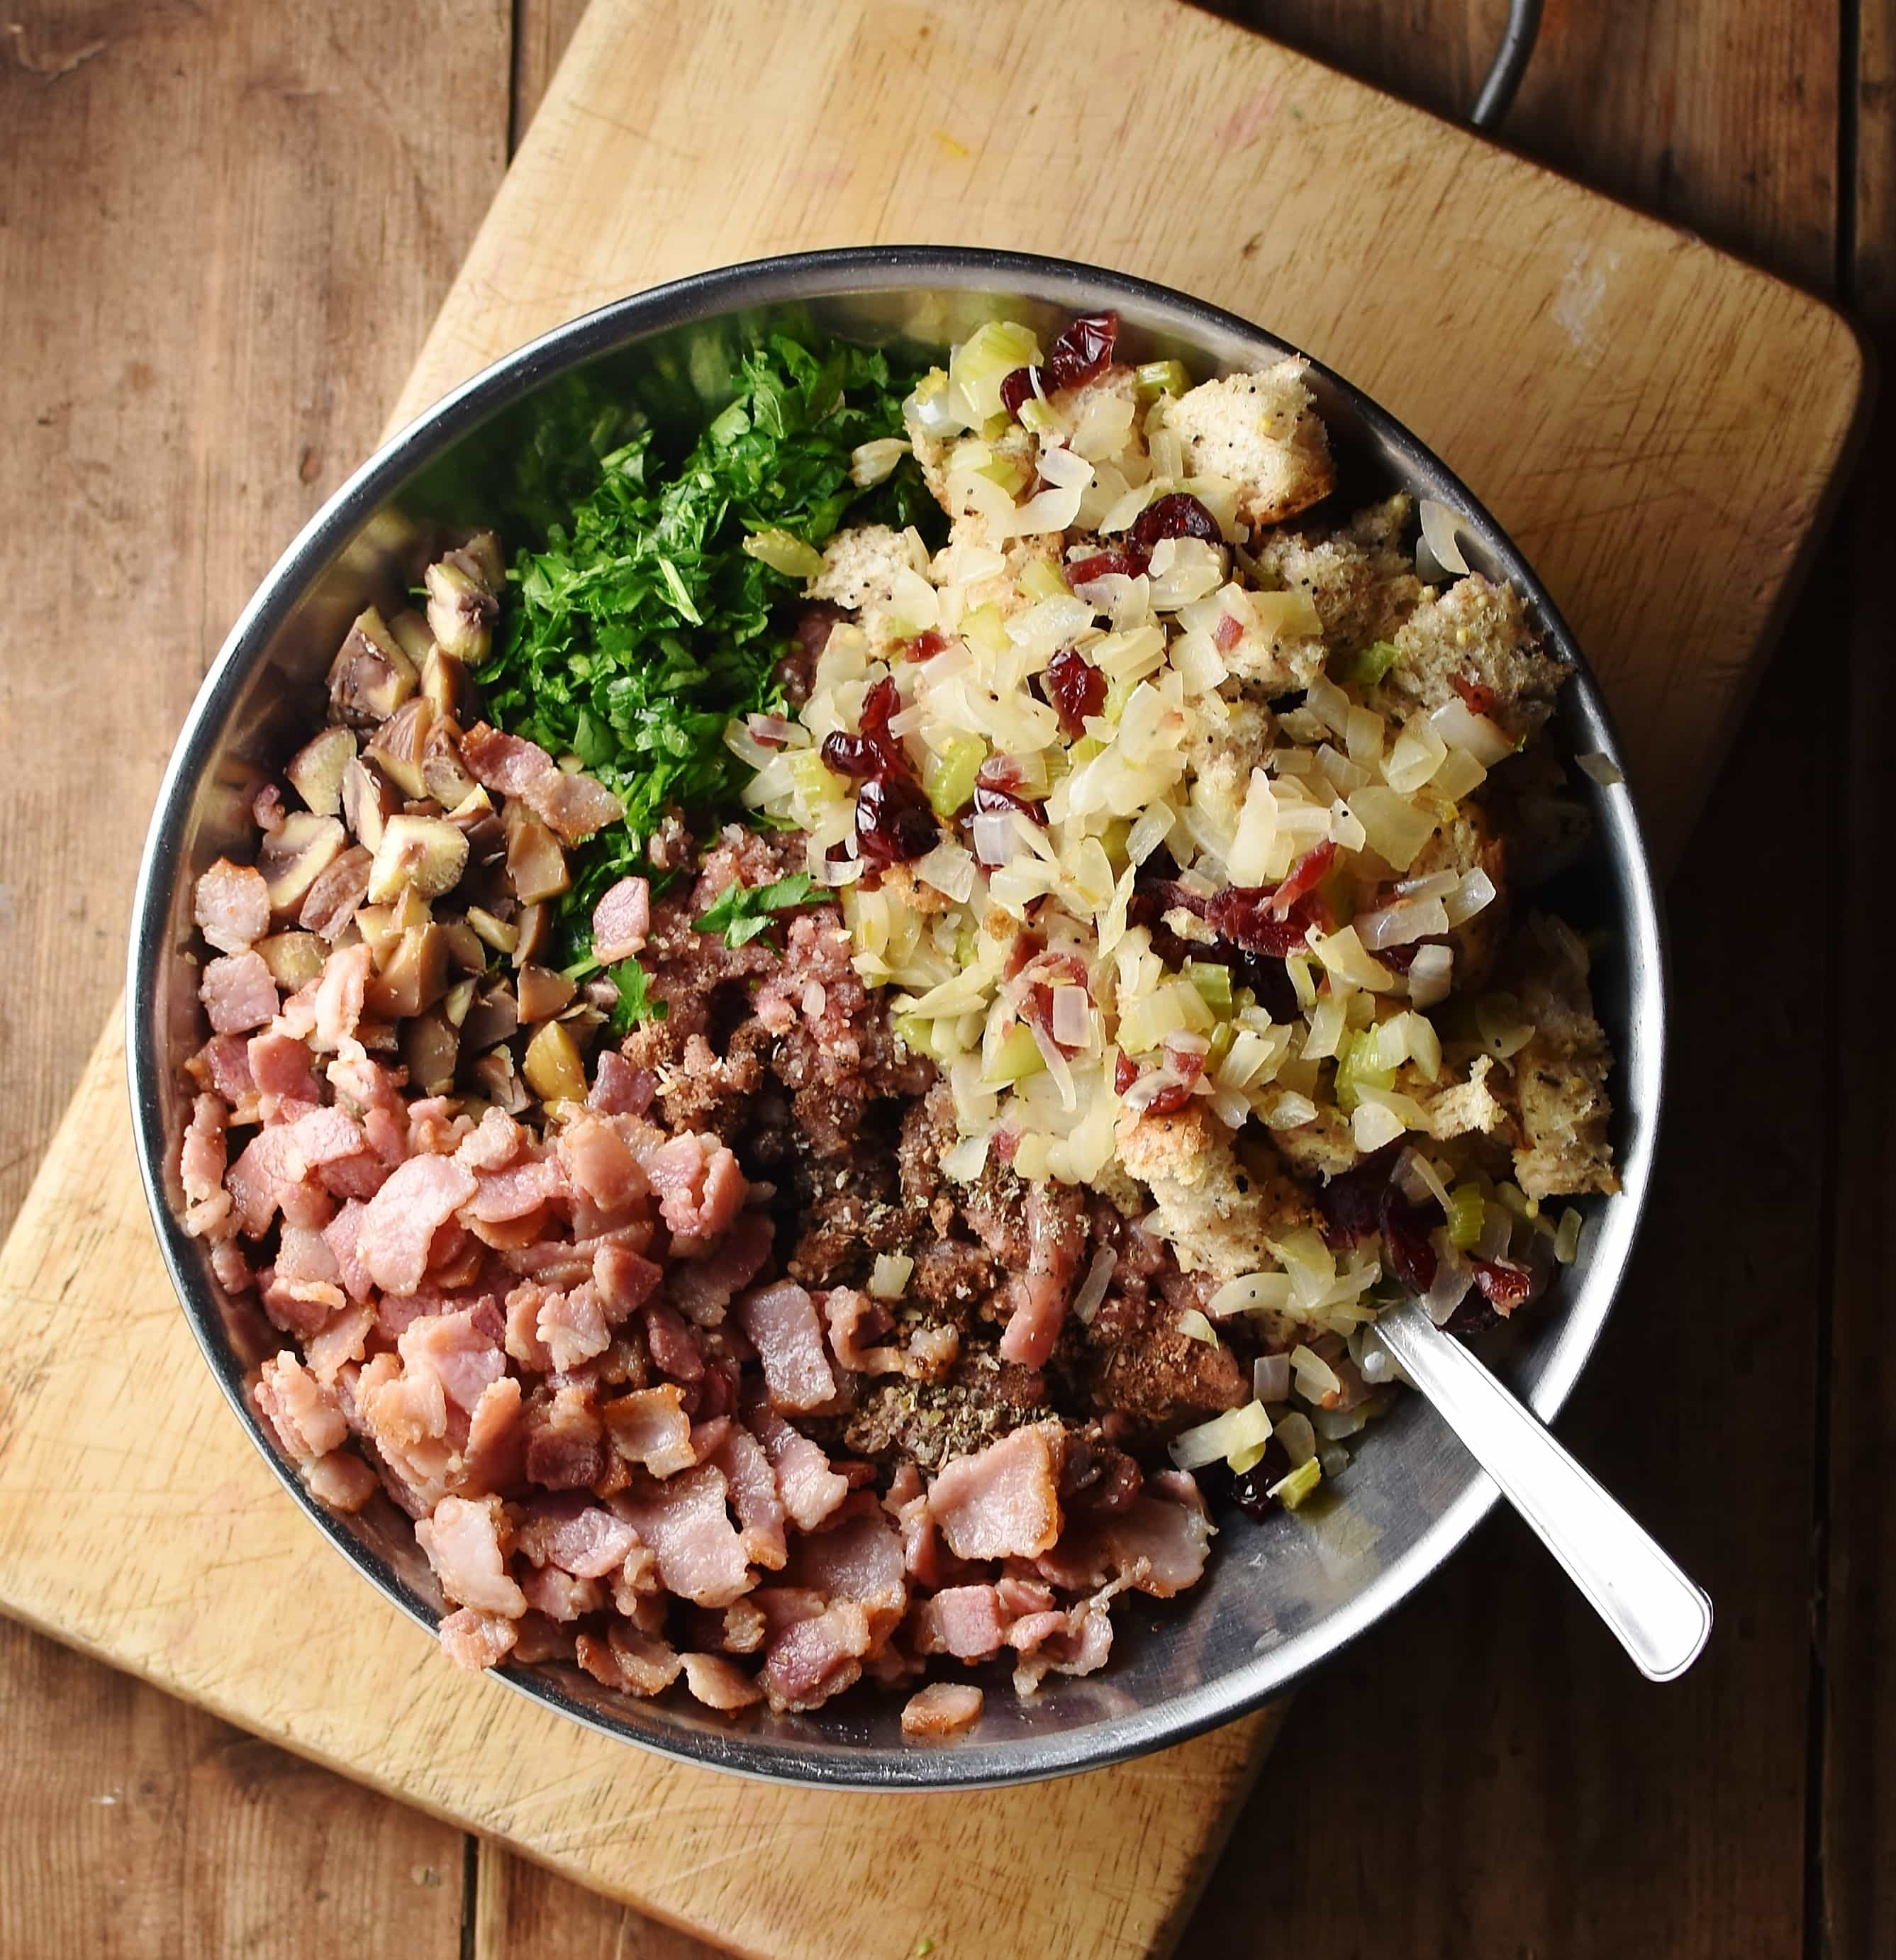 Bacon pieces, herbs, ground turkey, cranberries, chestnuts and chopped onions in large metal bowl with spoon on top of wooden board.